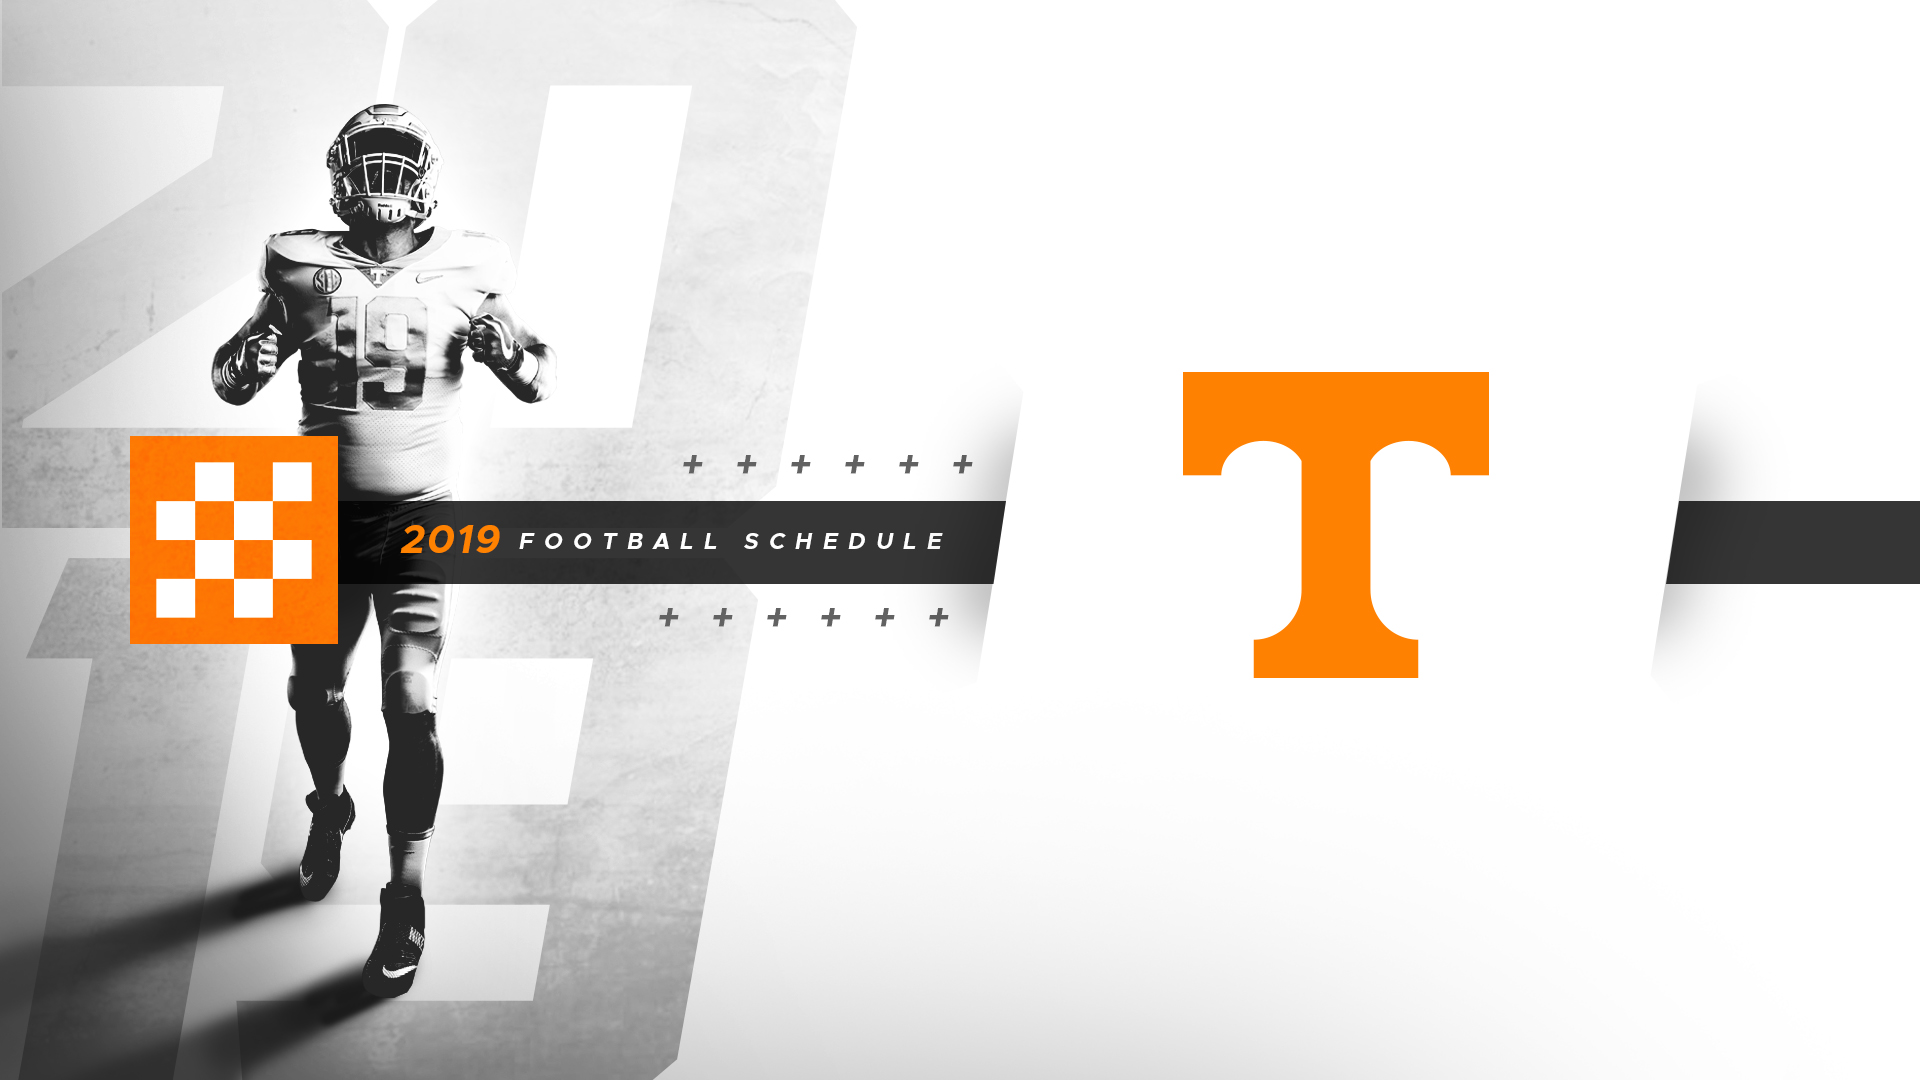 photograph regarding Uk Basketball Printable Schedule known as TENNESSEE Soccer ANNOUNCES 2019 Program - School of